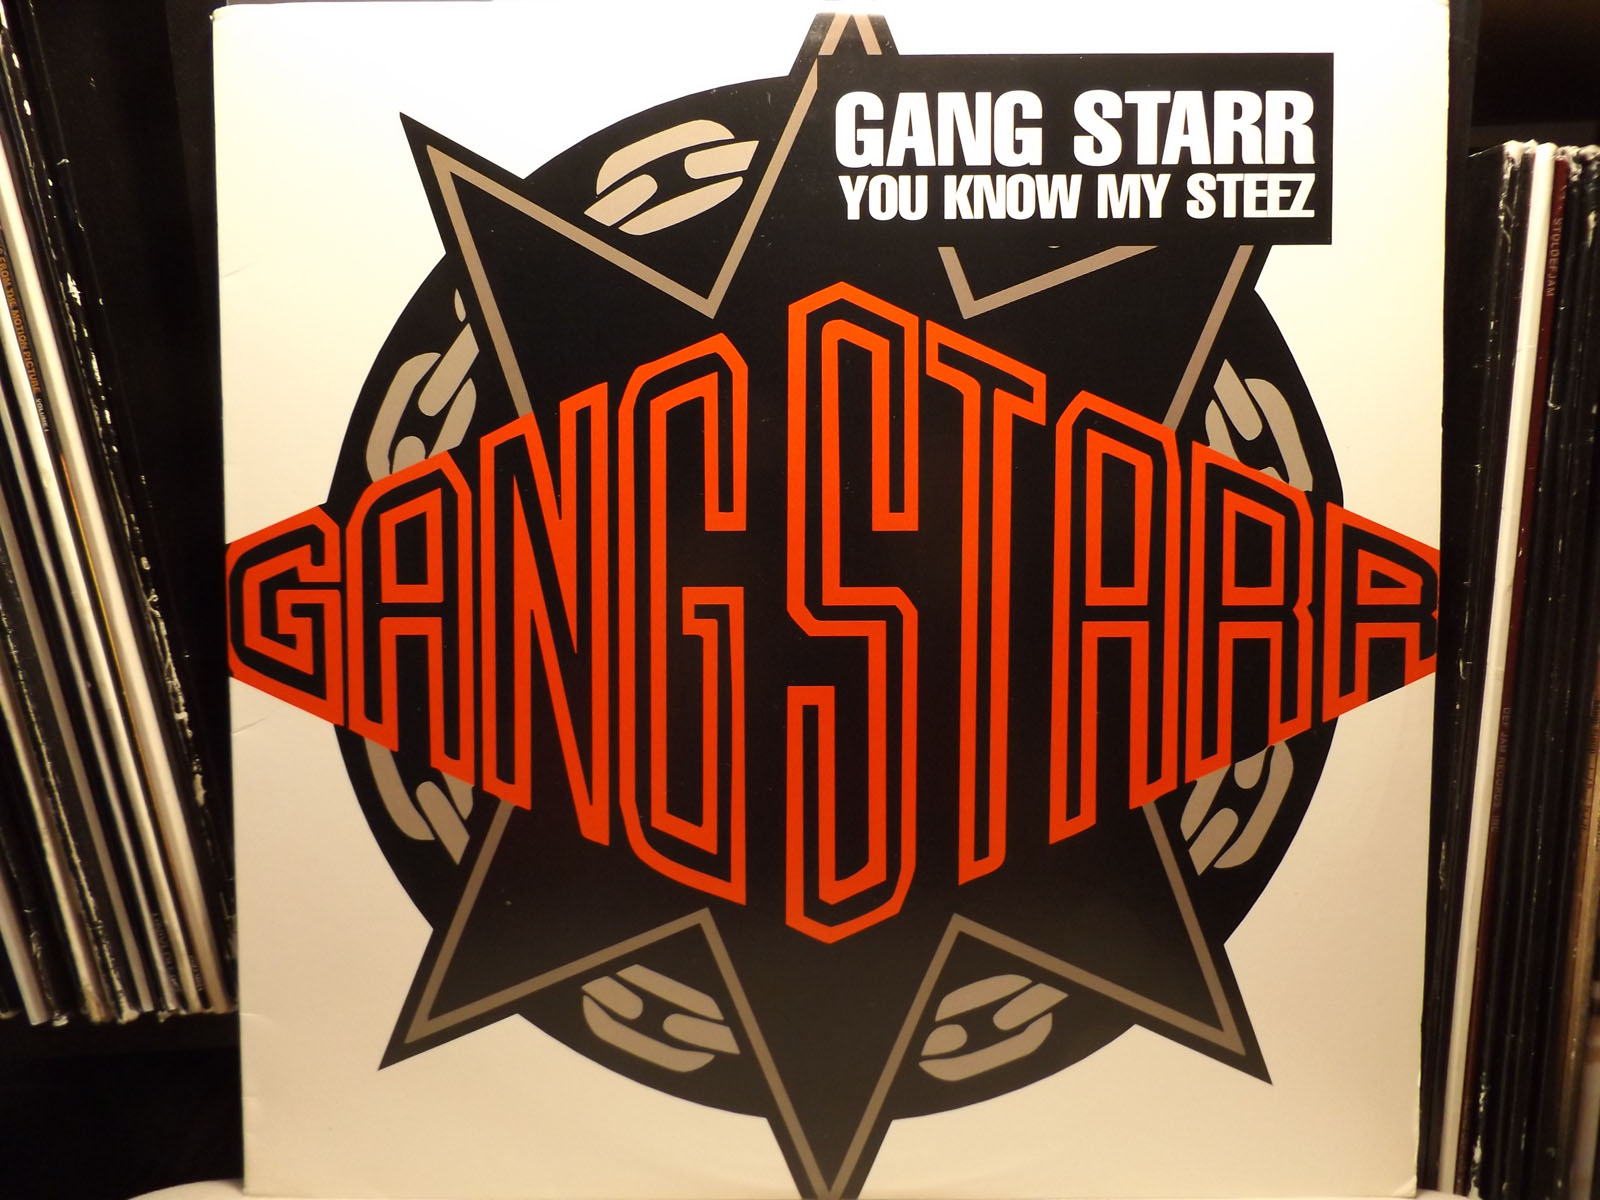 Details about GANG STARR - YOU KNOW MY STEEZ / SO WASSUP?! (12